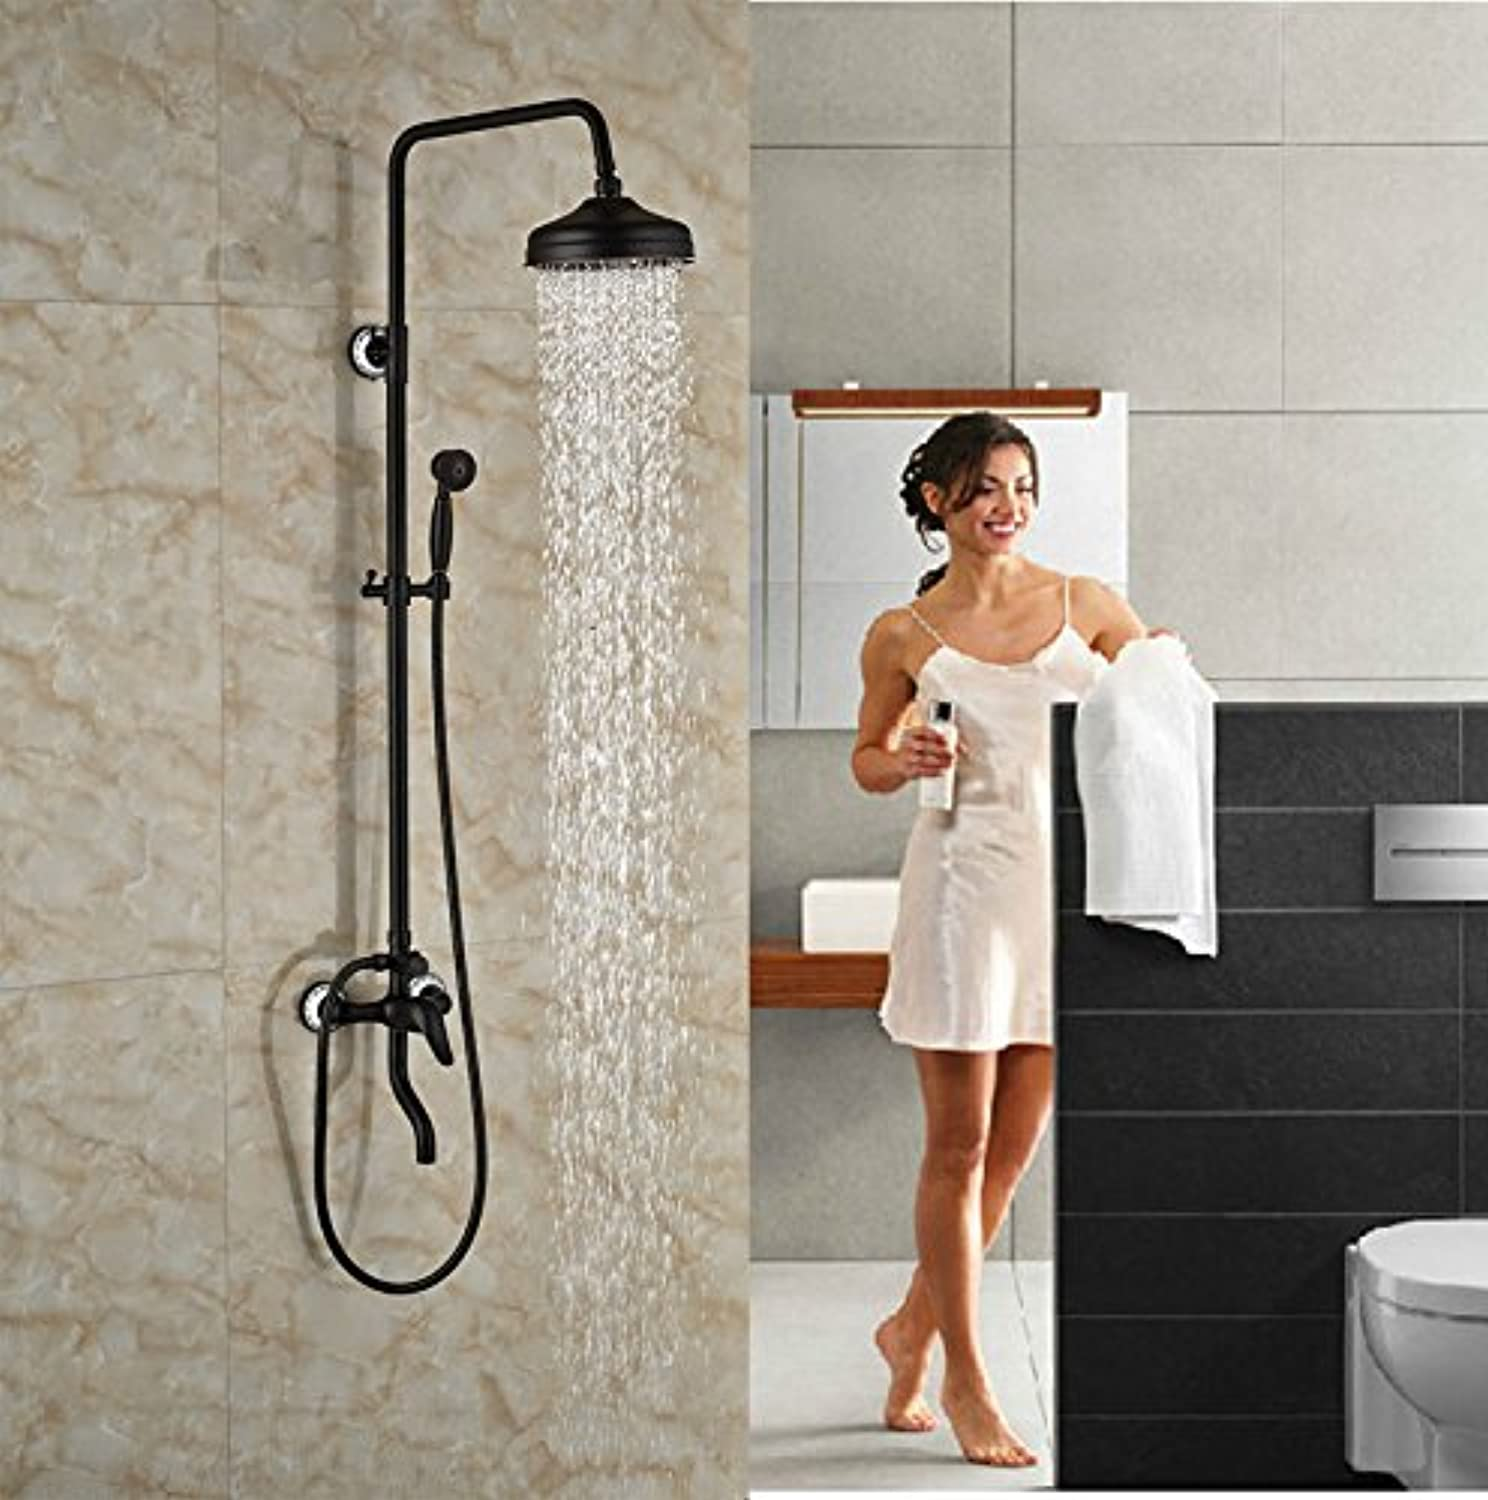 Oil Rubbed Broze Shower Set Wall Mounted Single Lever With Hand Shower Faucet,schwarz